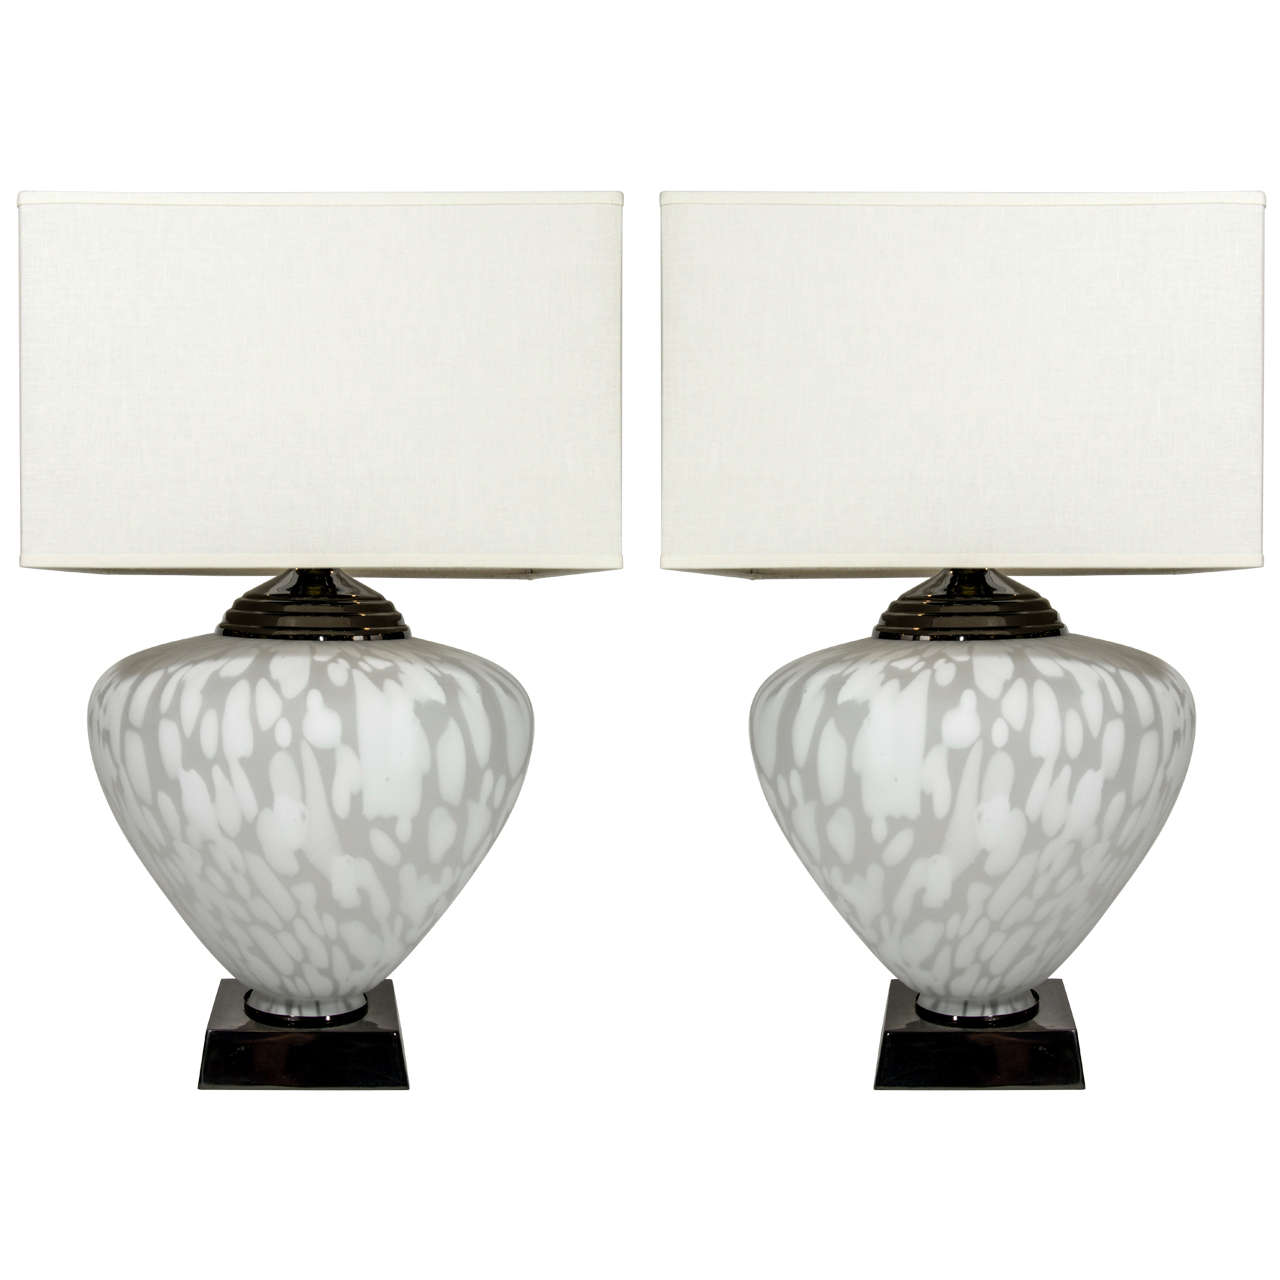 Pair Of Ultra Modern Large Murano Gl Lamps With Illuminated Urns For